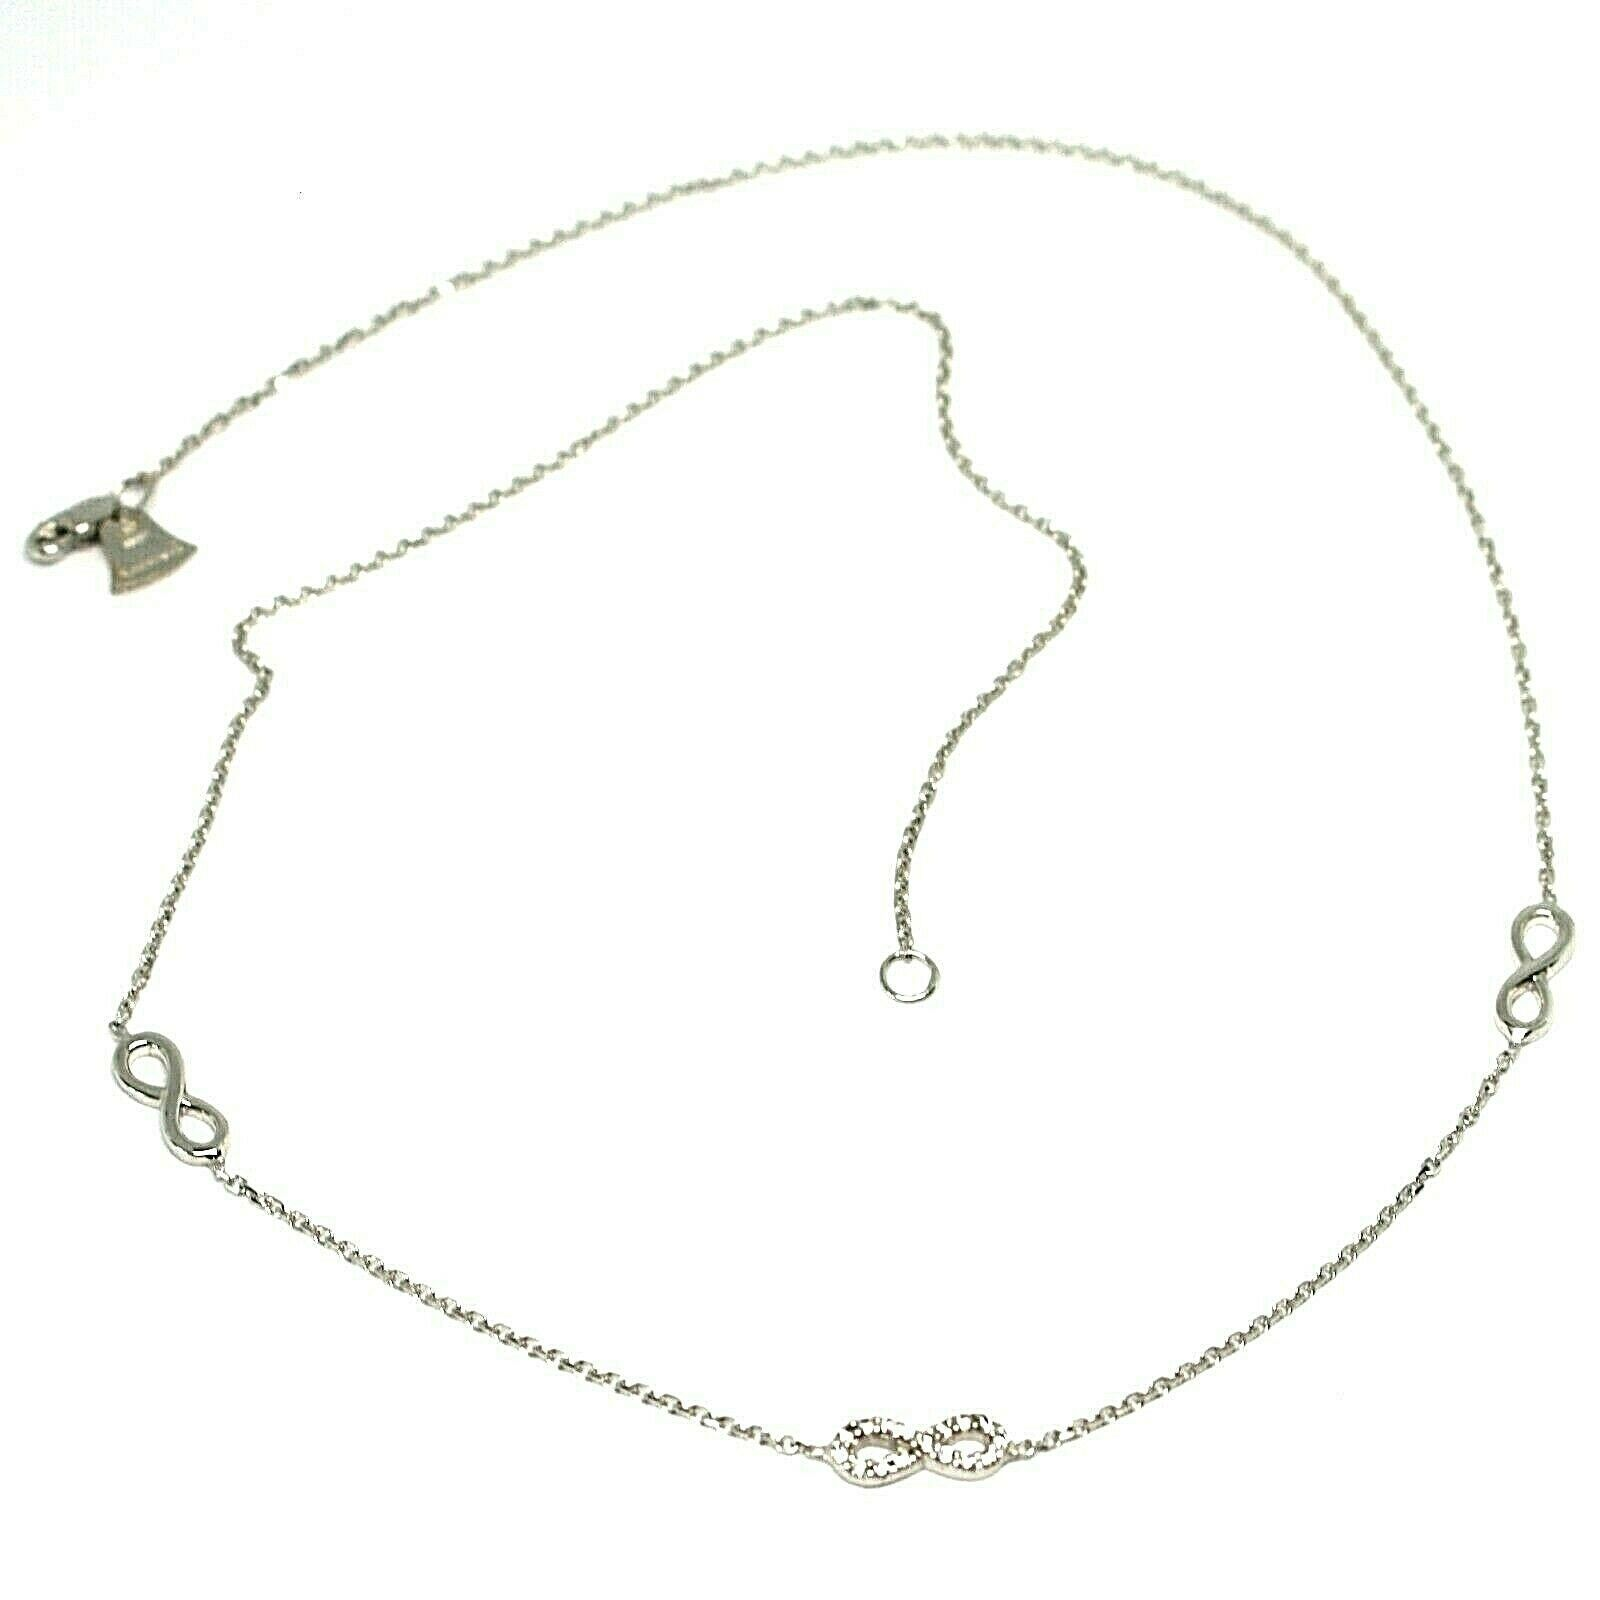 Necklace White Gold 18k 750, Chain Rolo ' , Symbols Infinity, Zircon Cubic